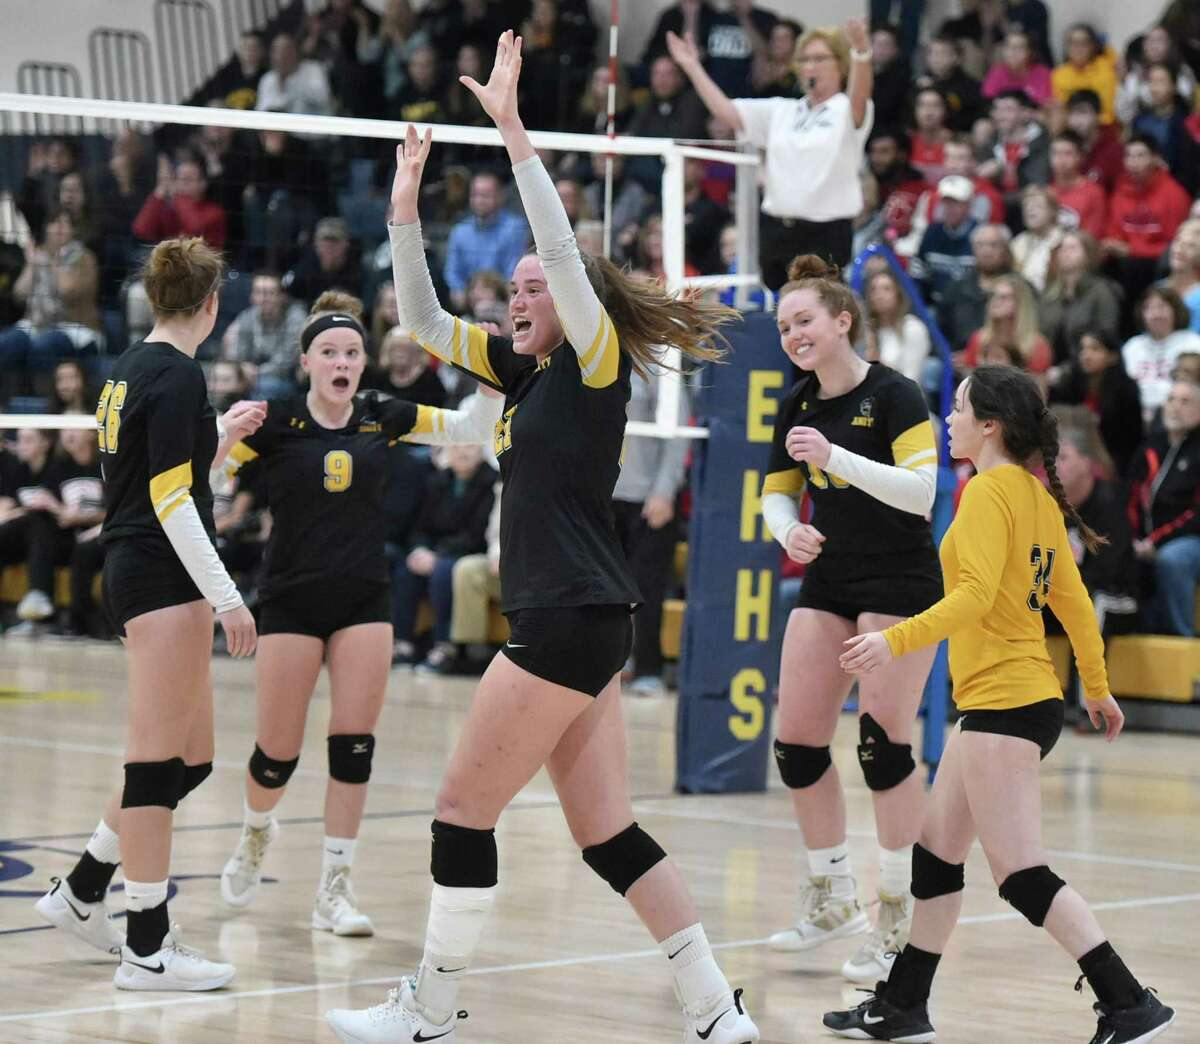 East Haven, Connecticut - Saturday, November 3, 2018: #1 Cheshire H.S. vs. #2 Amity H.S. during the first game of the SCC Girls Volleyball